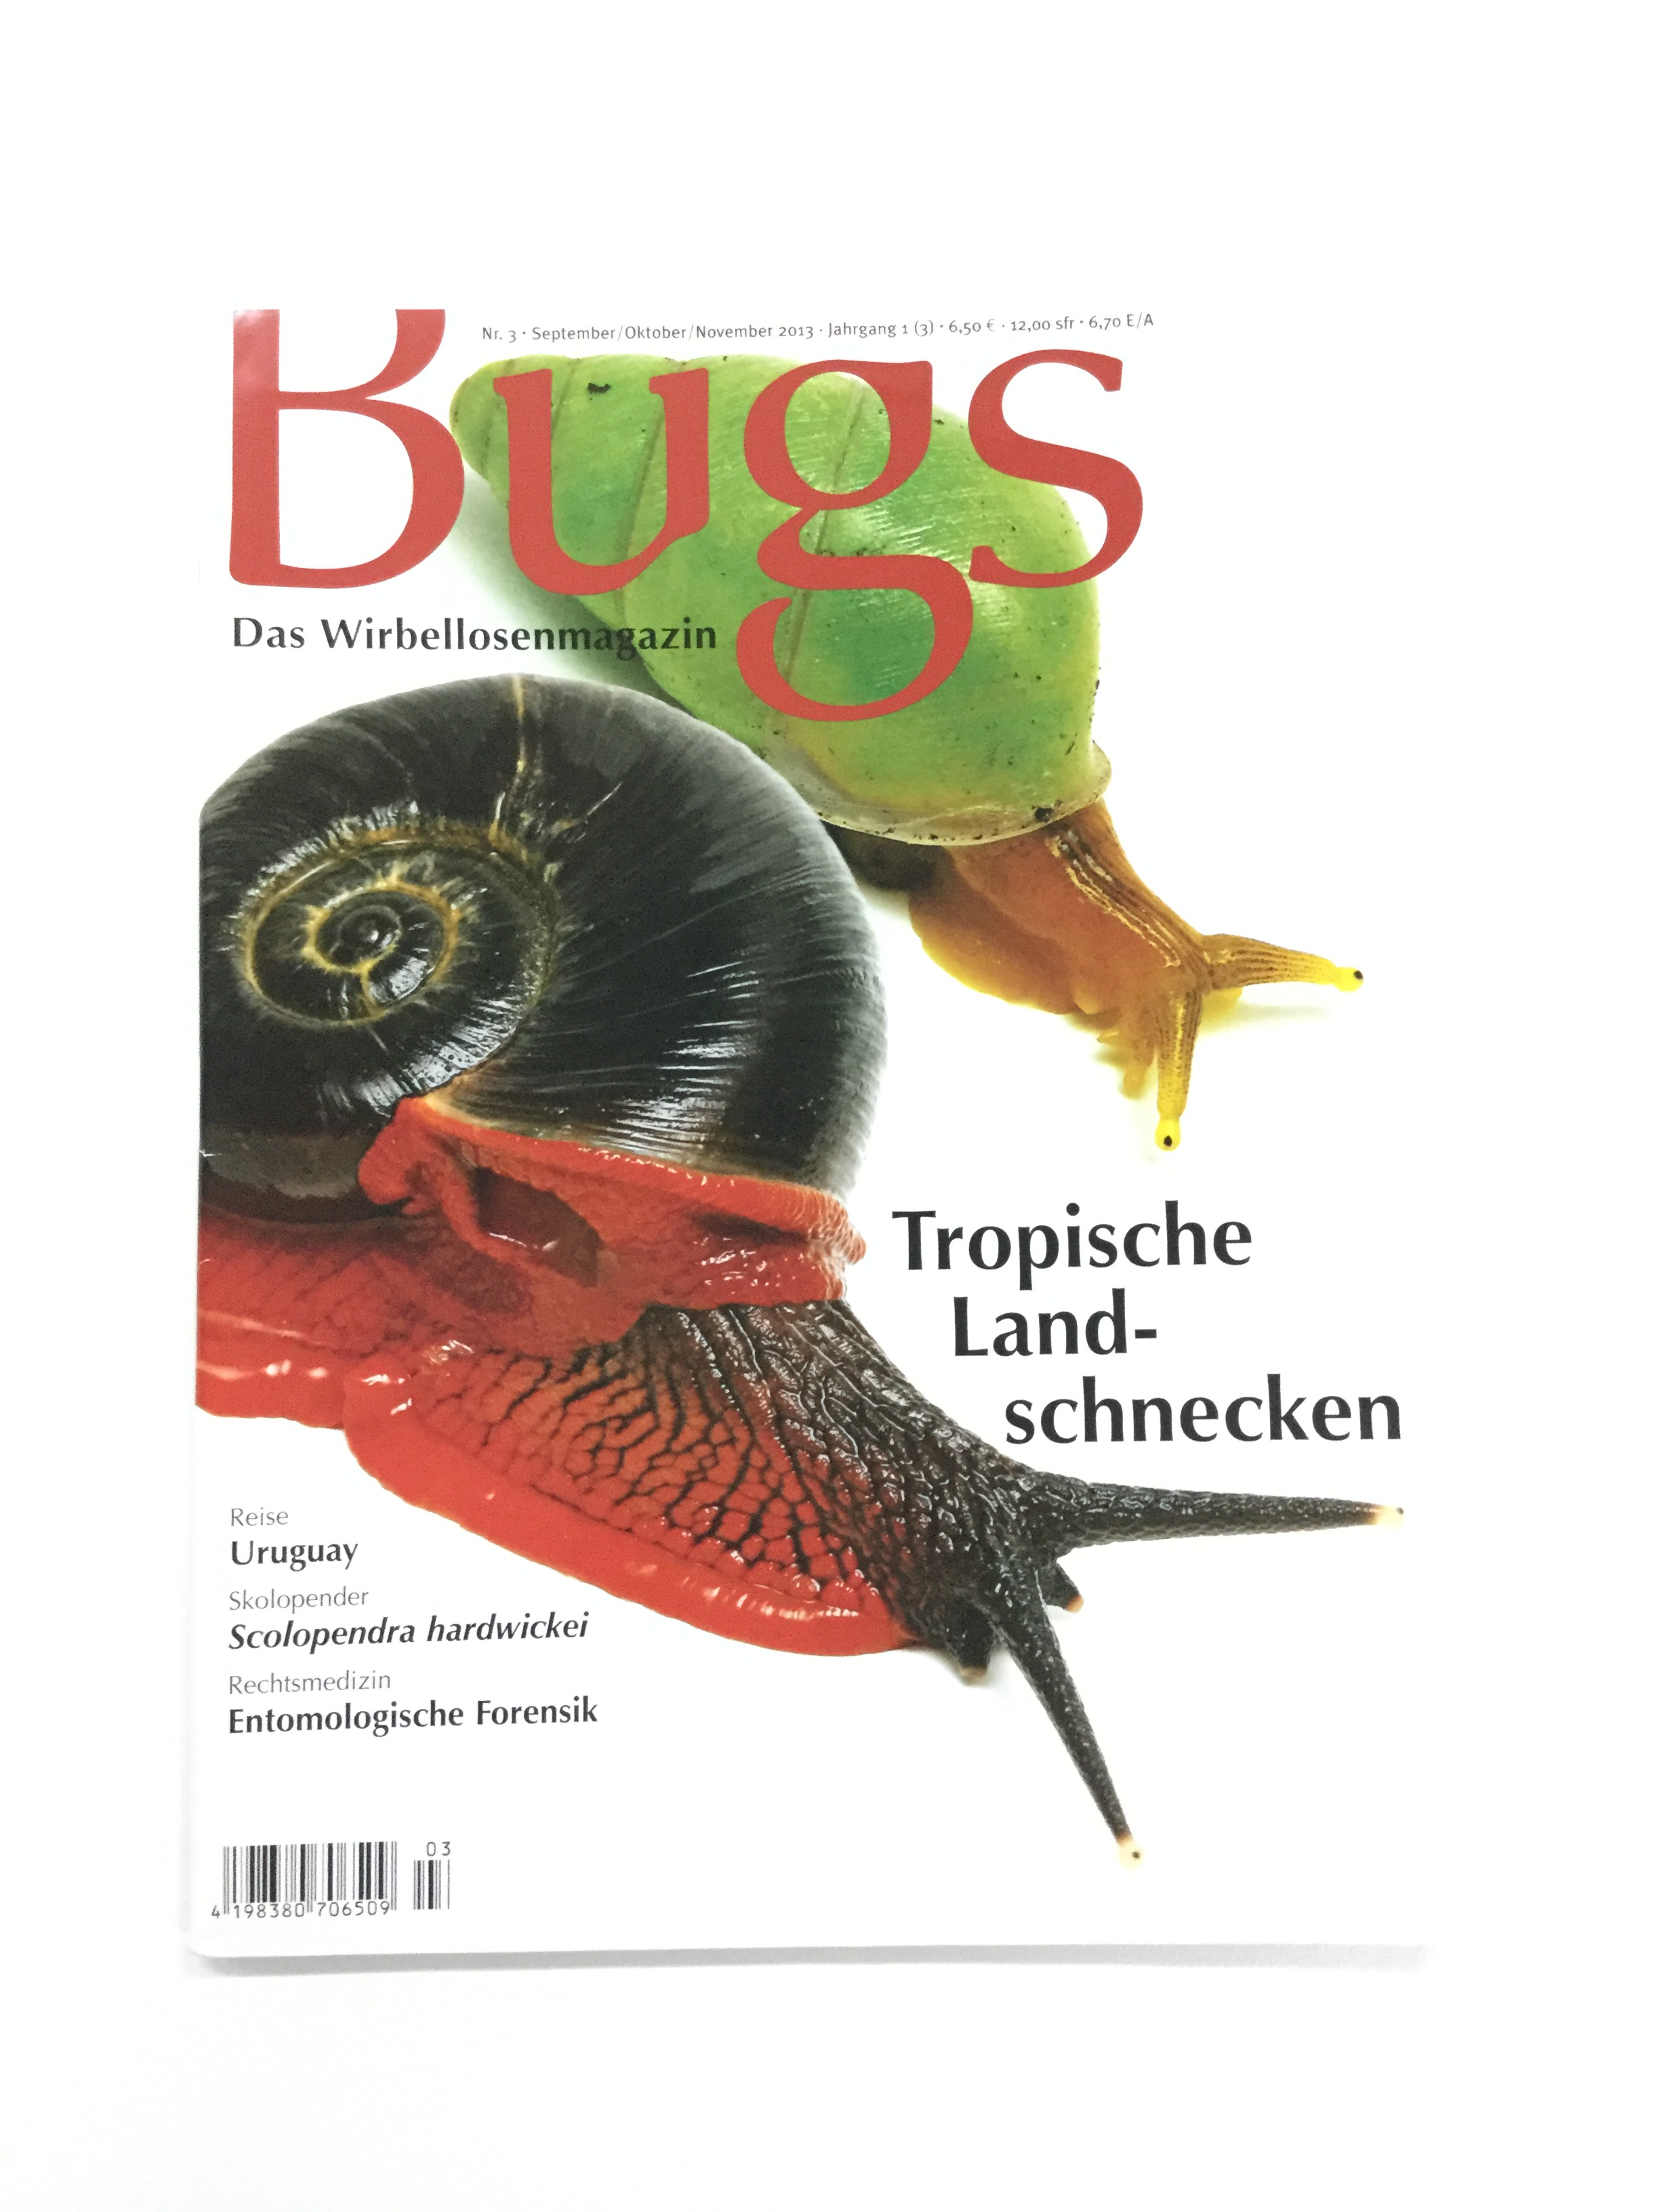 Bugs (Sep/Oct/Nov 2013 Cover)